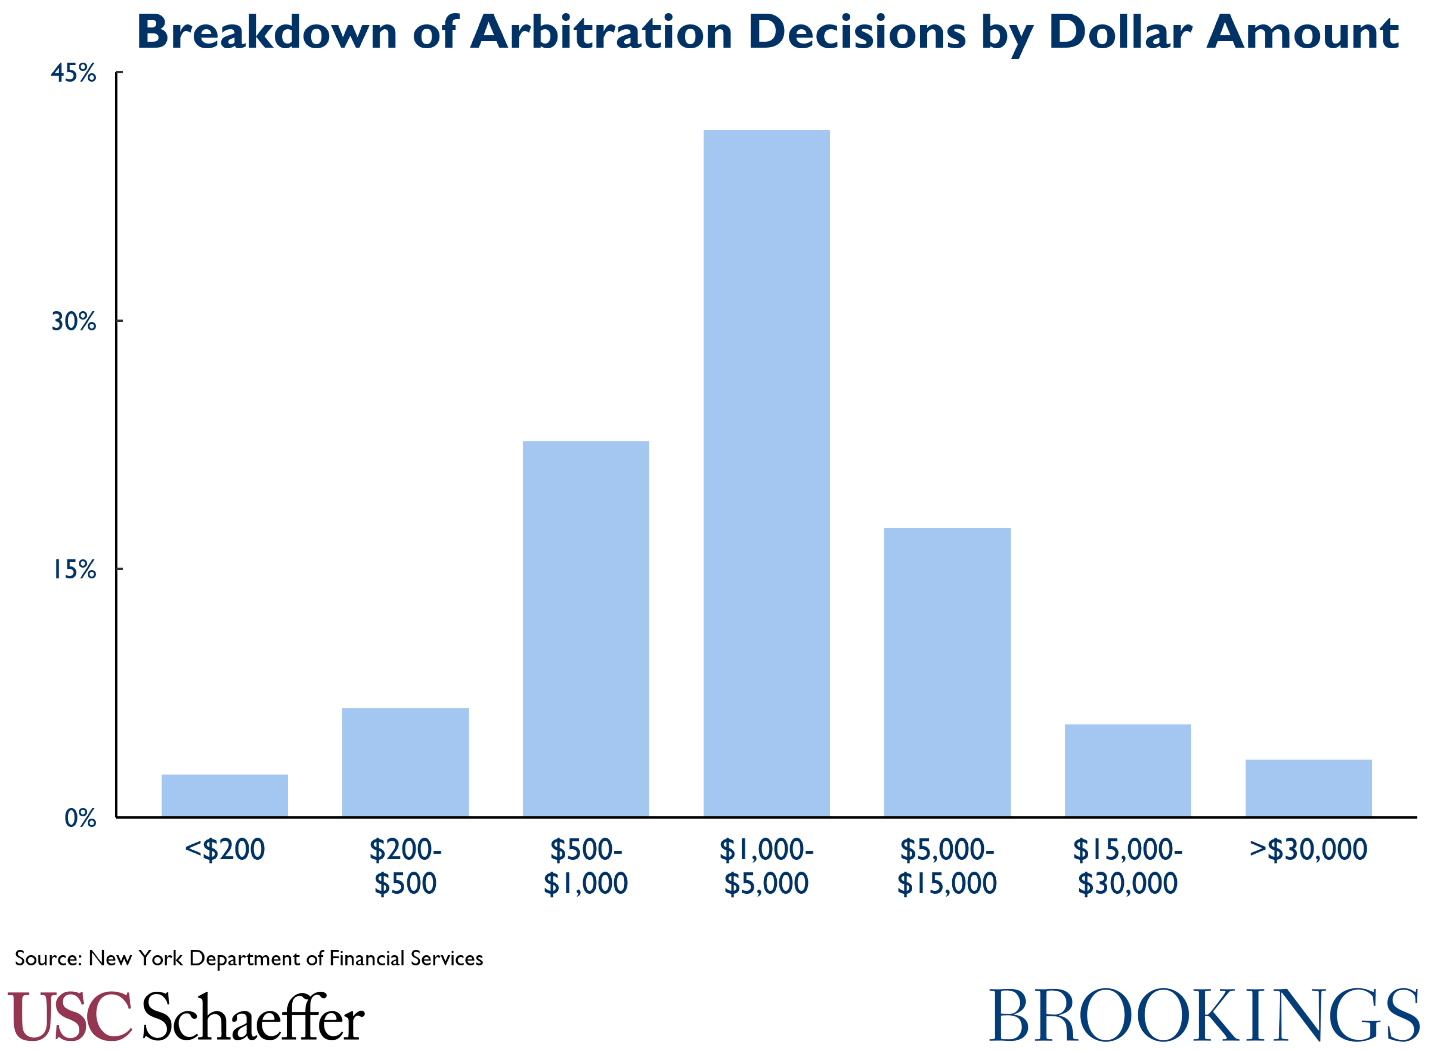 Breakdown of arbitration decisions by dollar amount